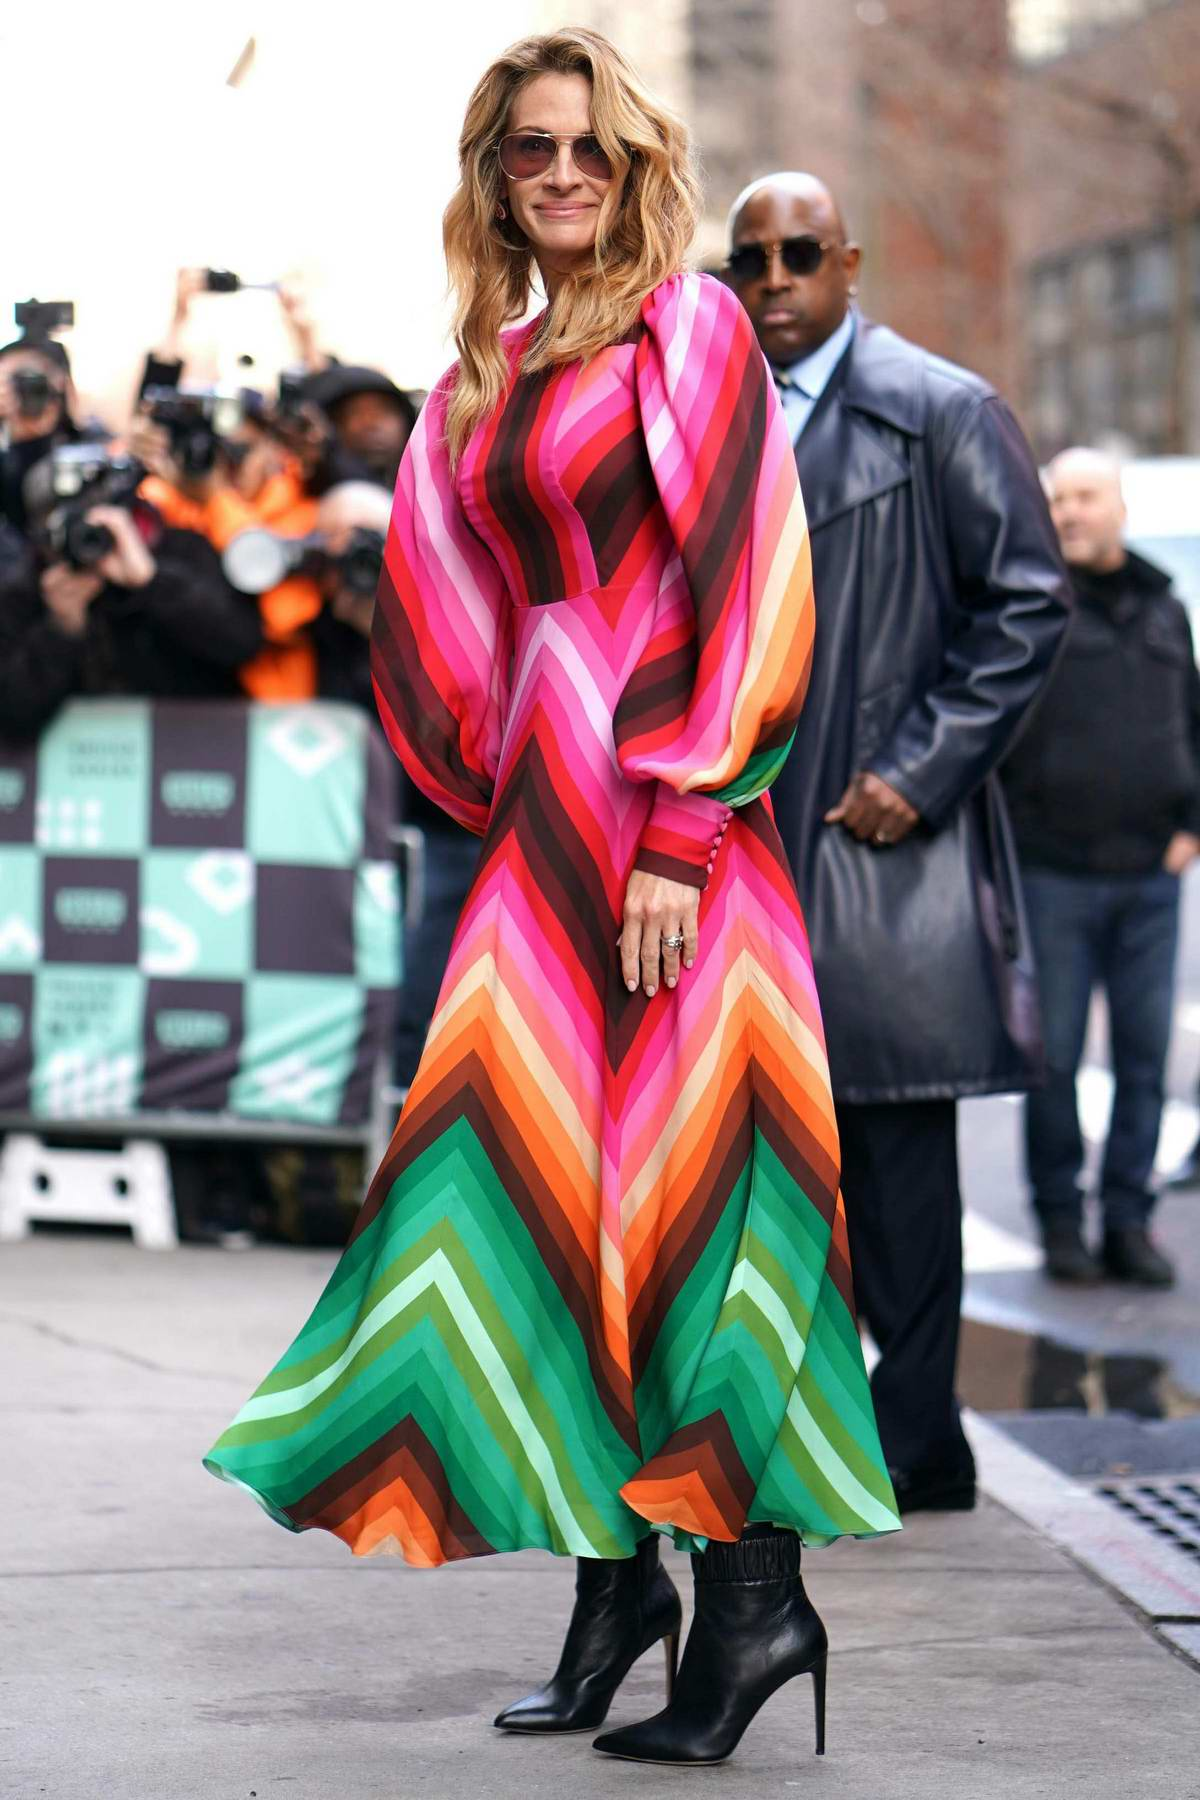 Julia Roberts looked lovely in a colorful dress while visiting AOL Build Series in New York City